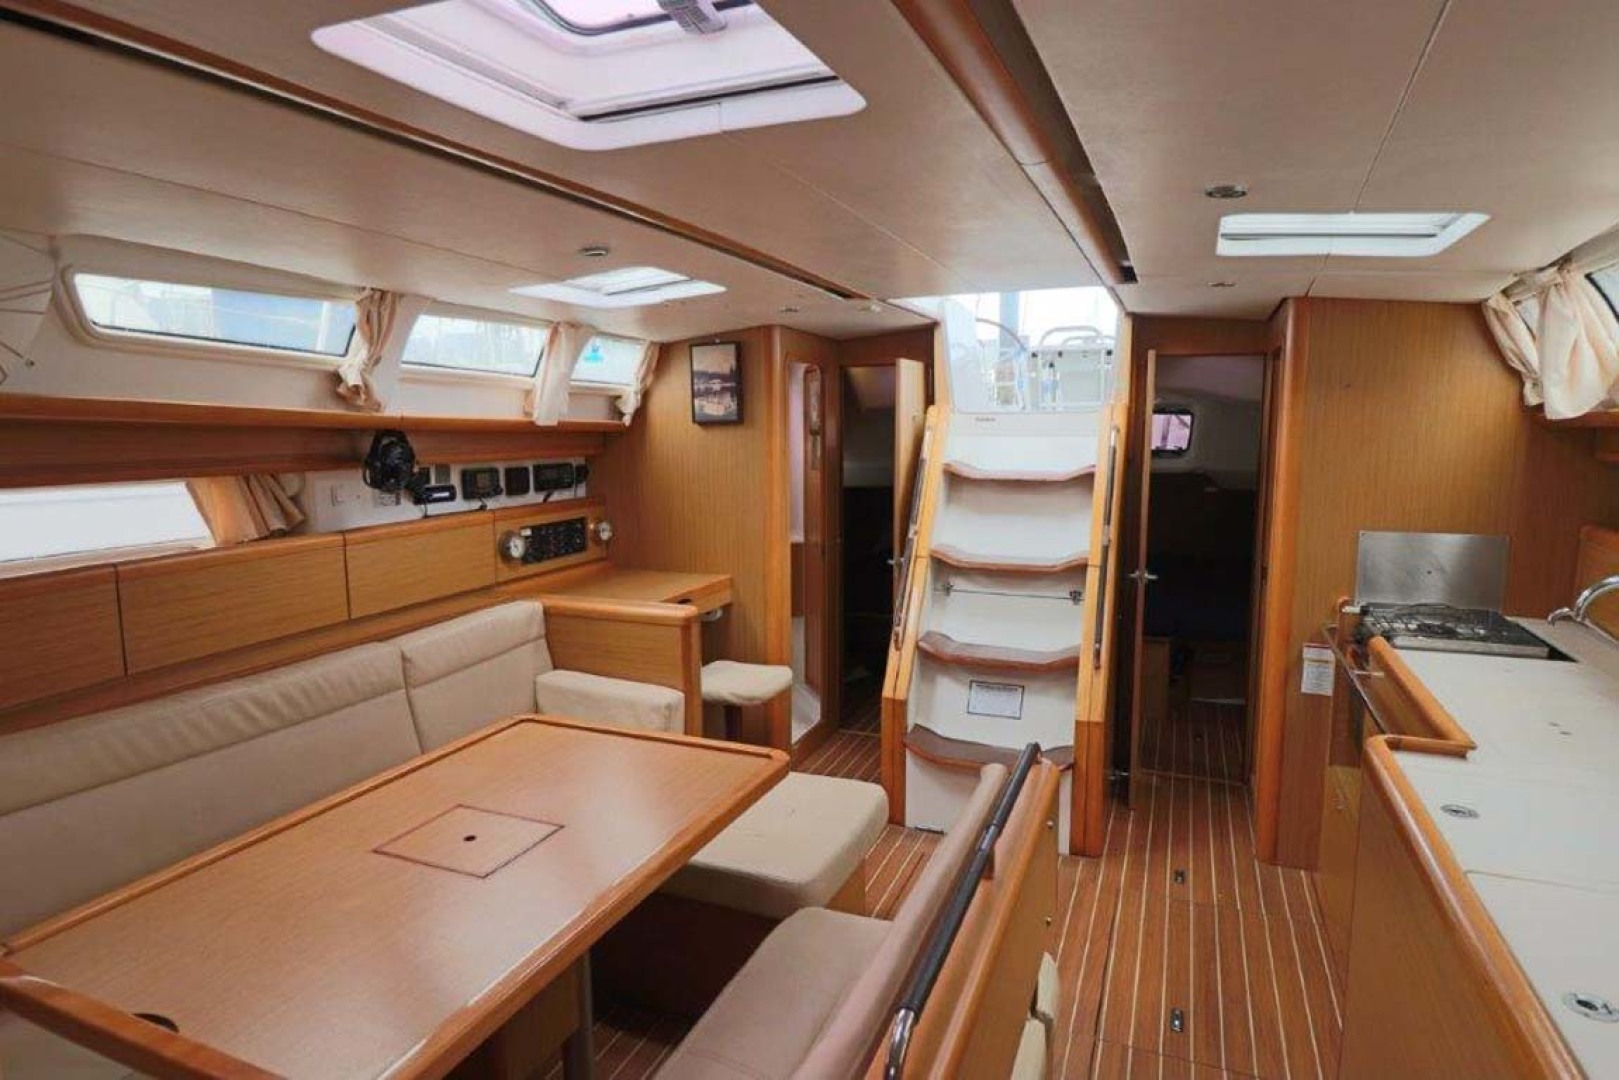 Jeanneau-Sun Odyssey 44i 2010-Intrigue Poulsbo-Washington-United States-Salon View From Master-1153322 | Thumbnail